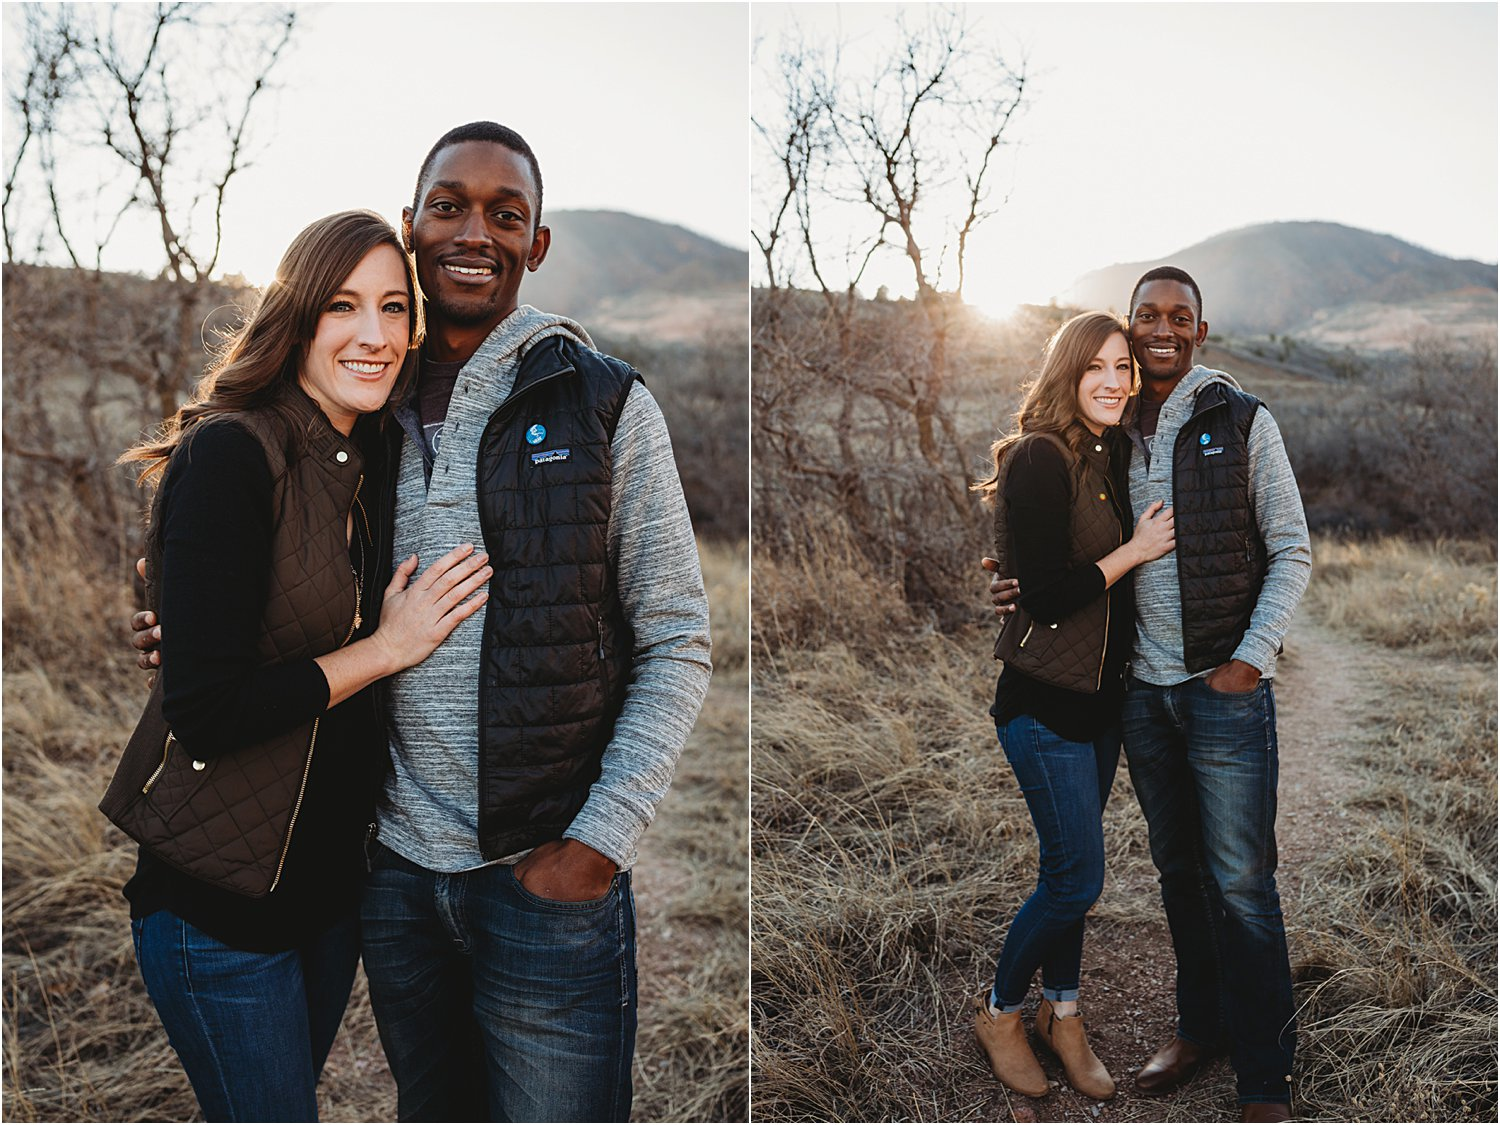 Collage of images of couple standing next to each other with sun setting behind them